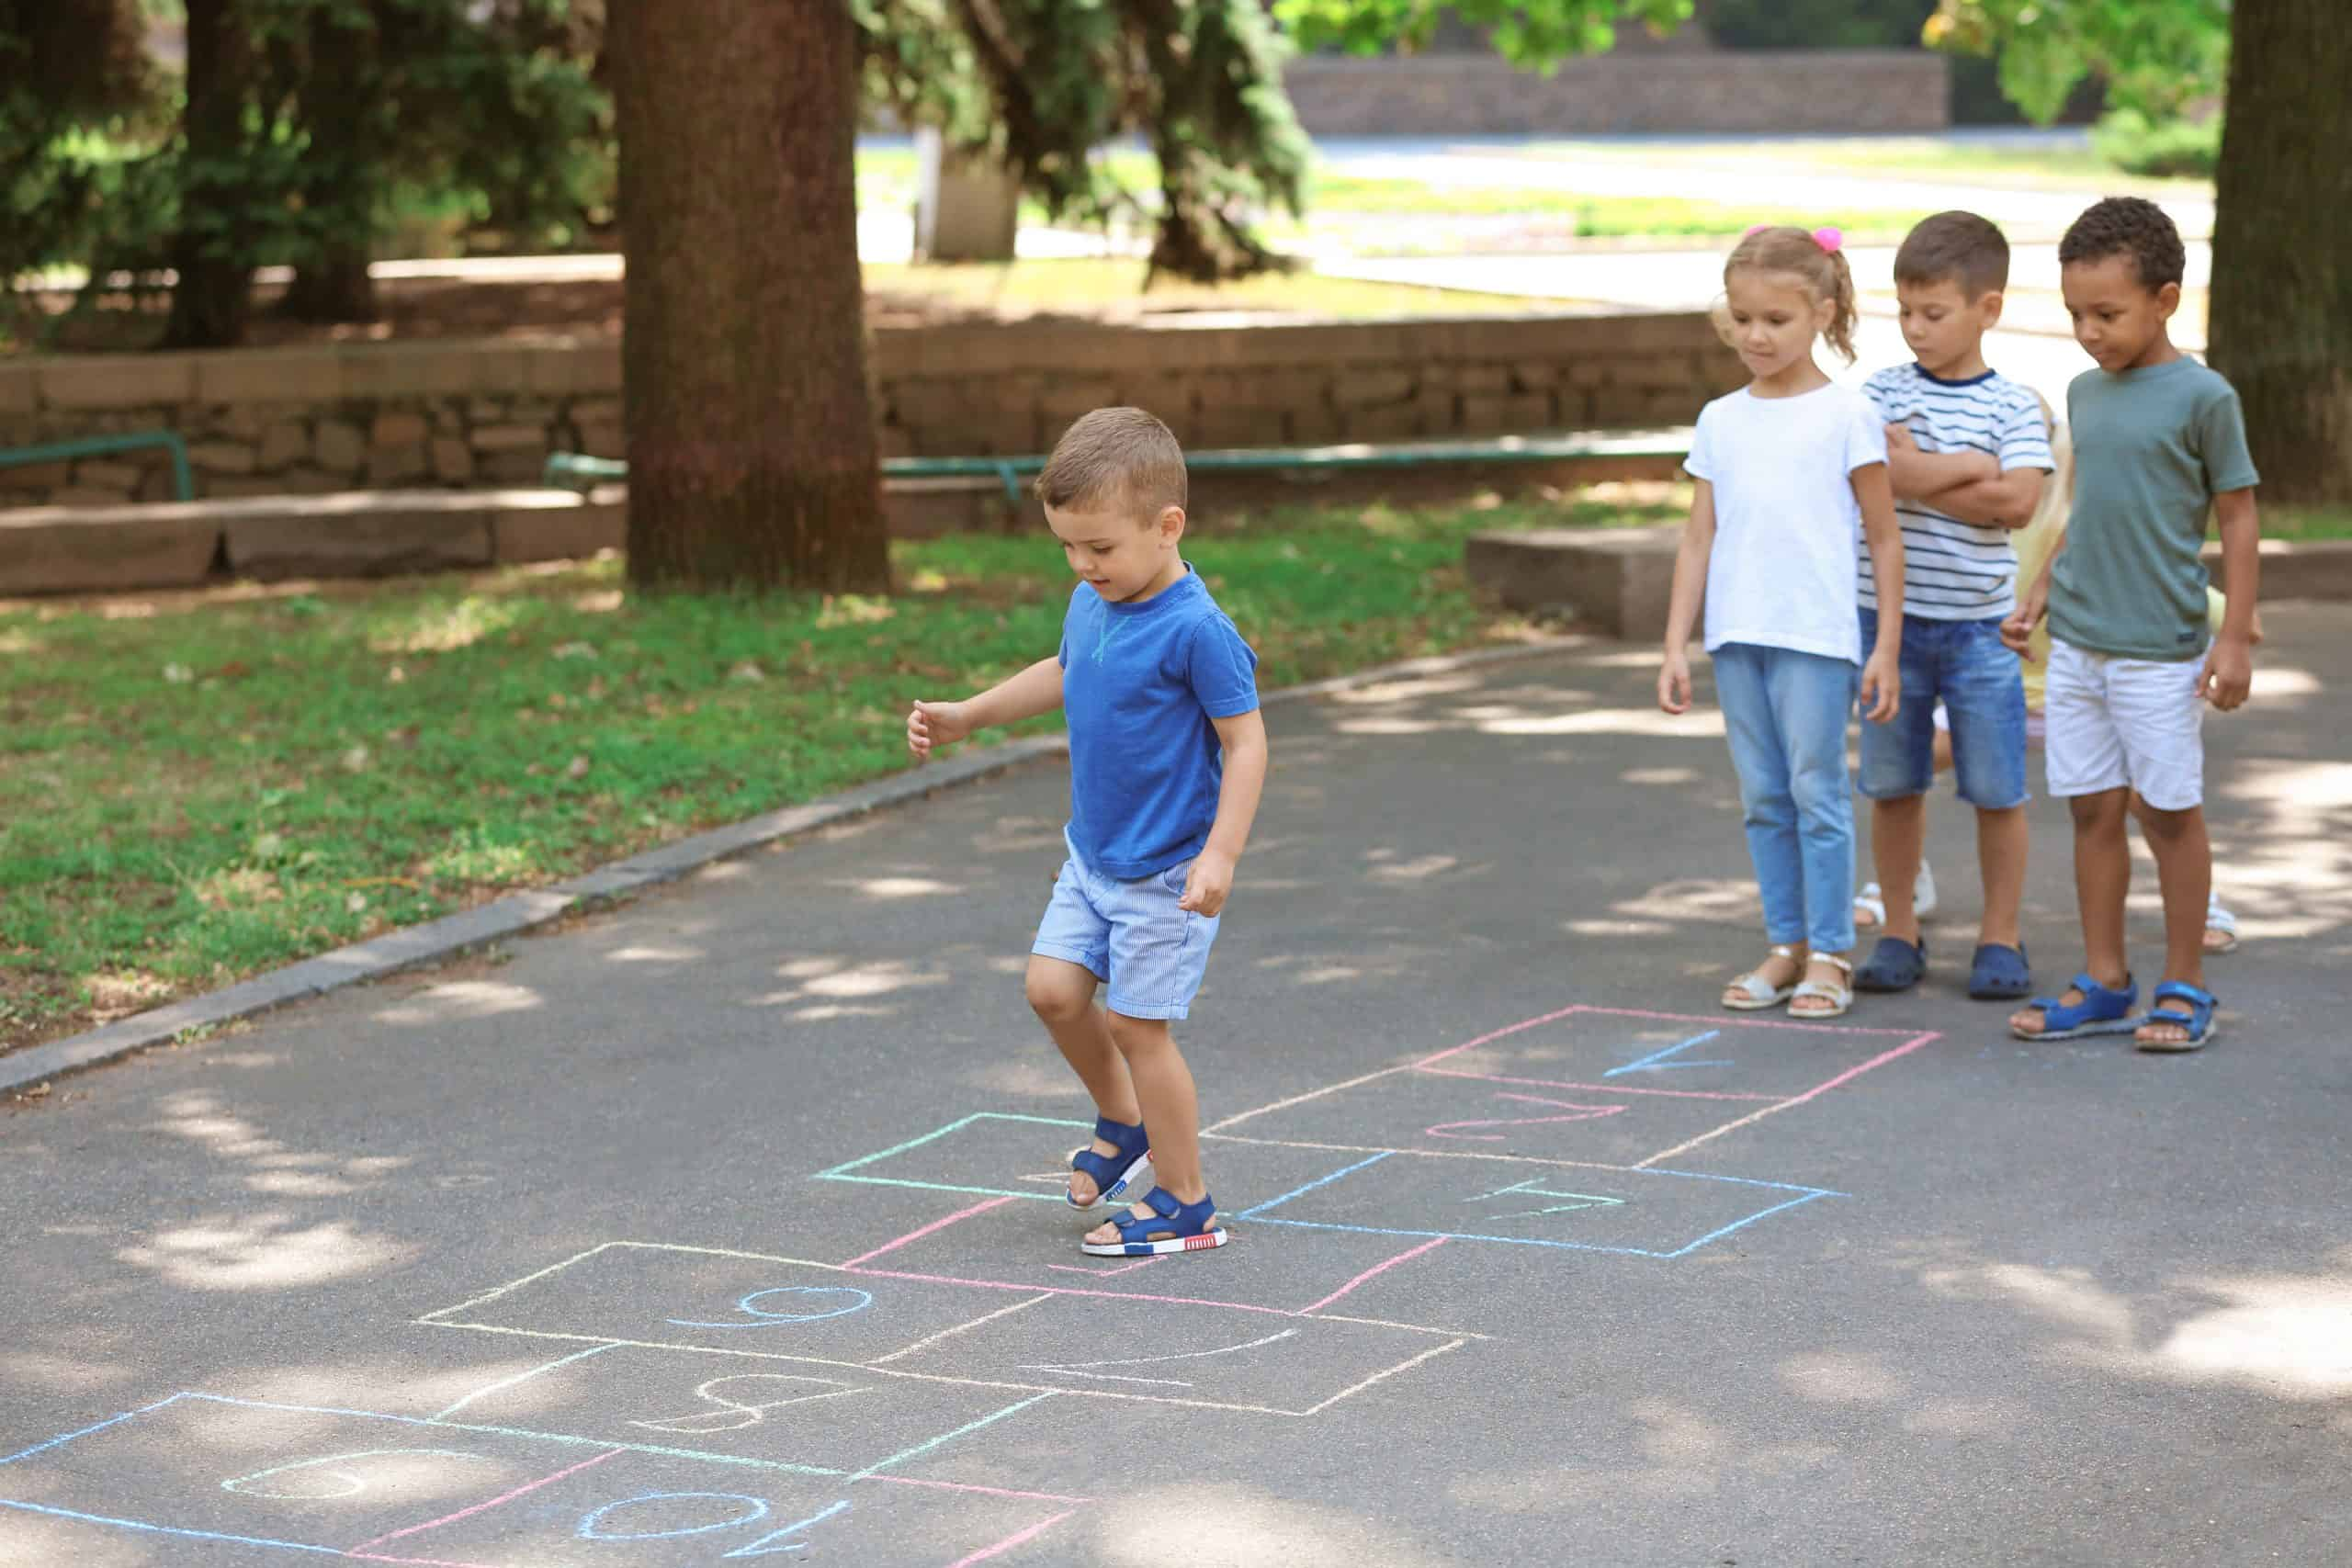 children play an old school game of hopscotch